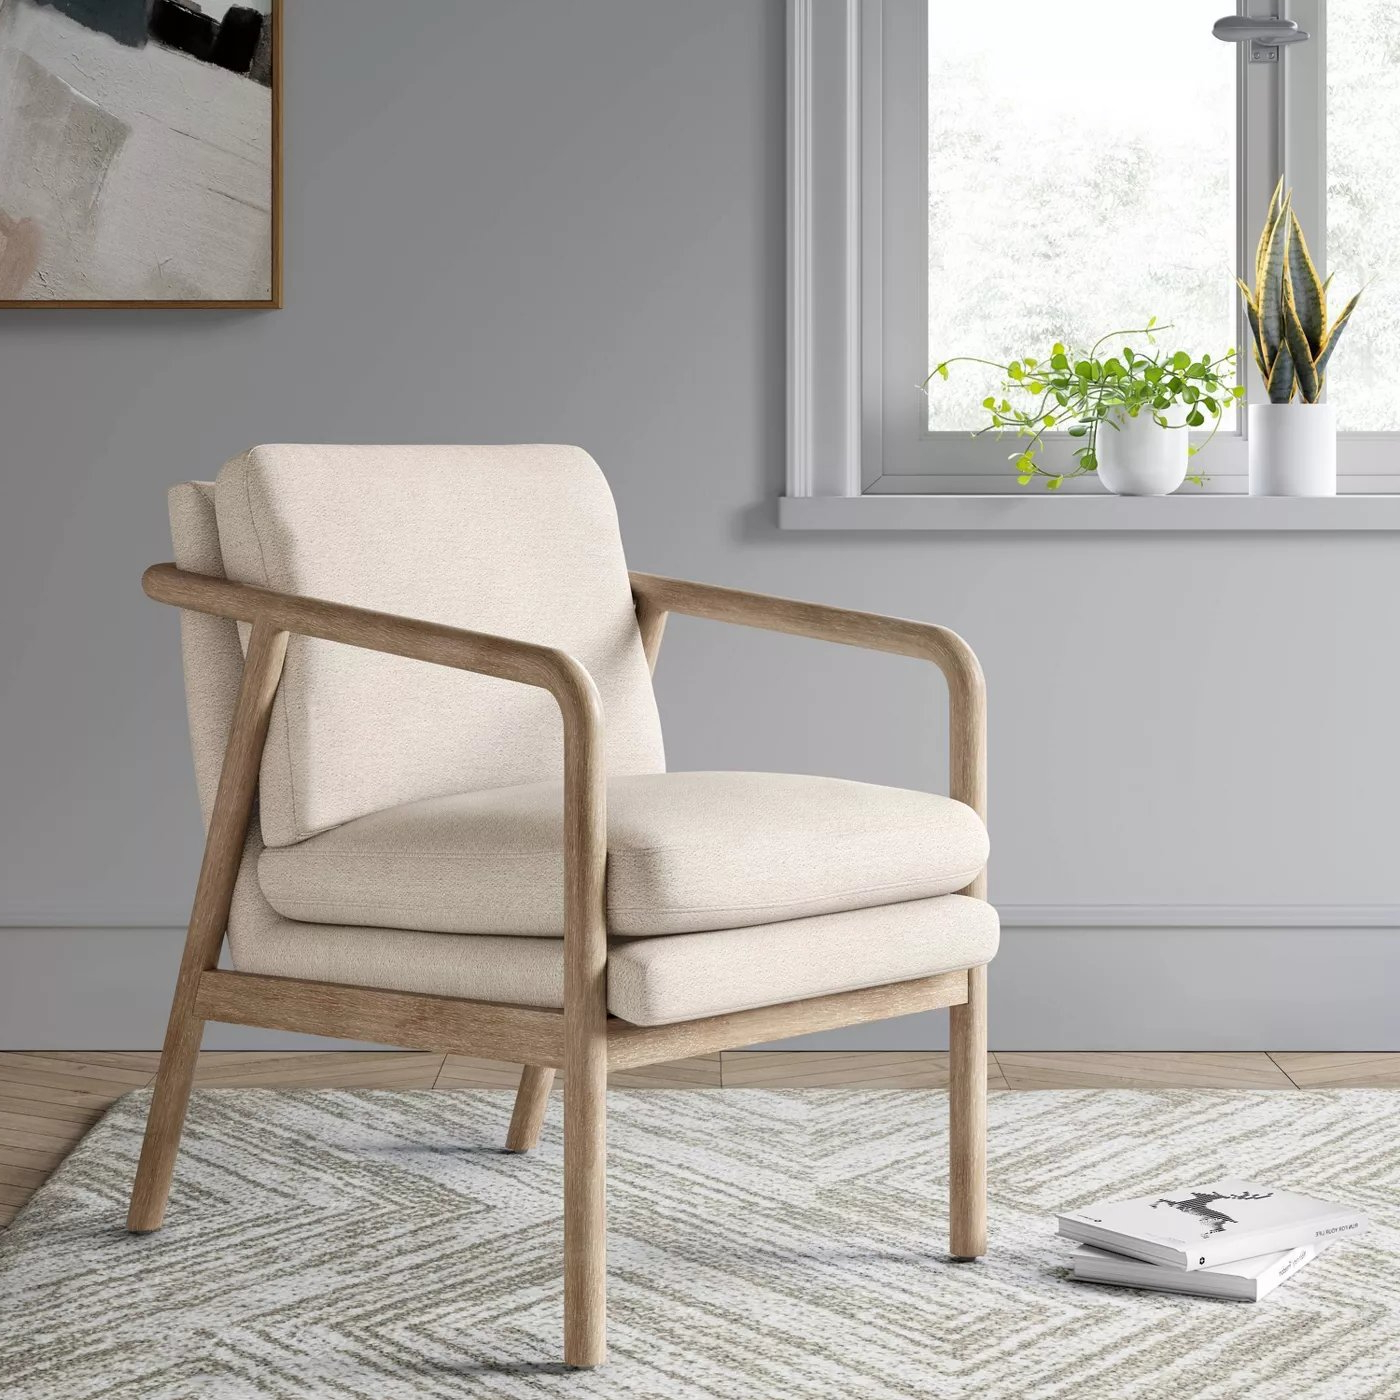 Best And Newest Tufeld Wood Arm Chair Gray – Project 62™ – Target Intended For Biggerstaff Polyester Blend Armchairs (View 20 of 20)